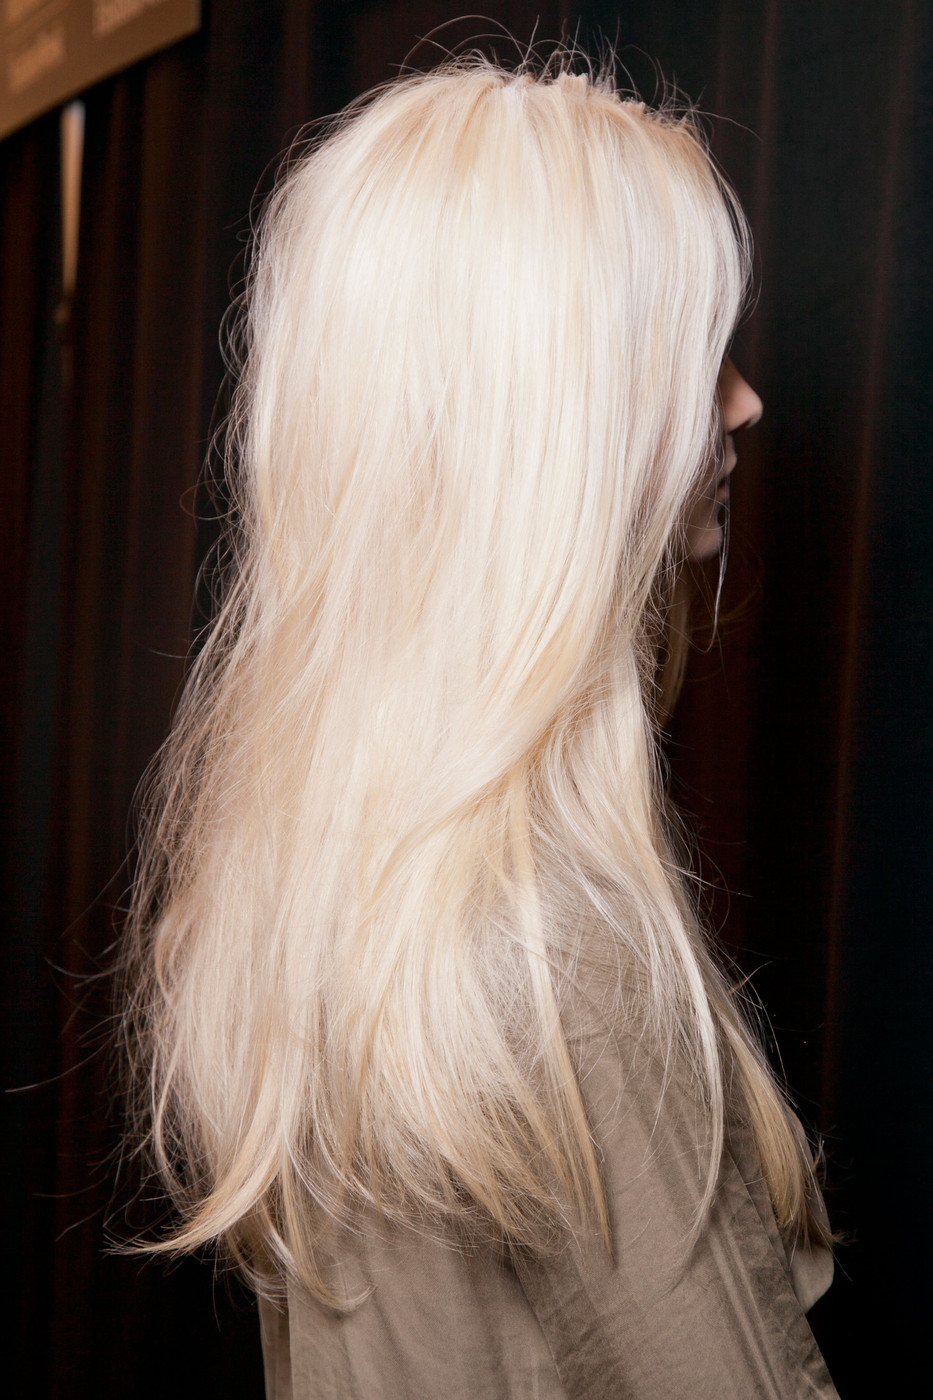 Second Floor Flat - Perfect Bleached Blonde Hair